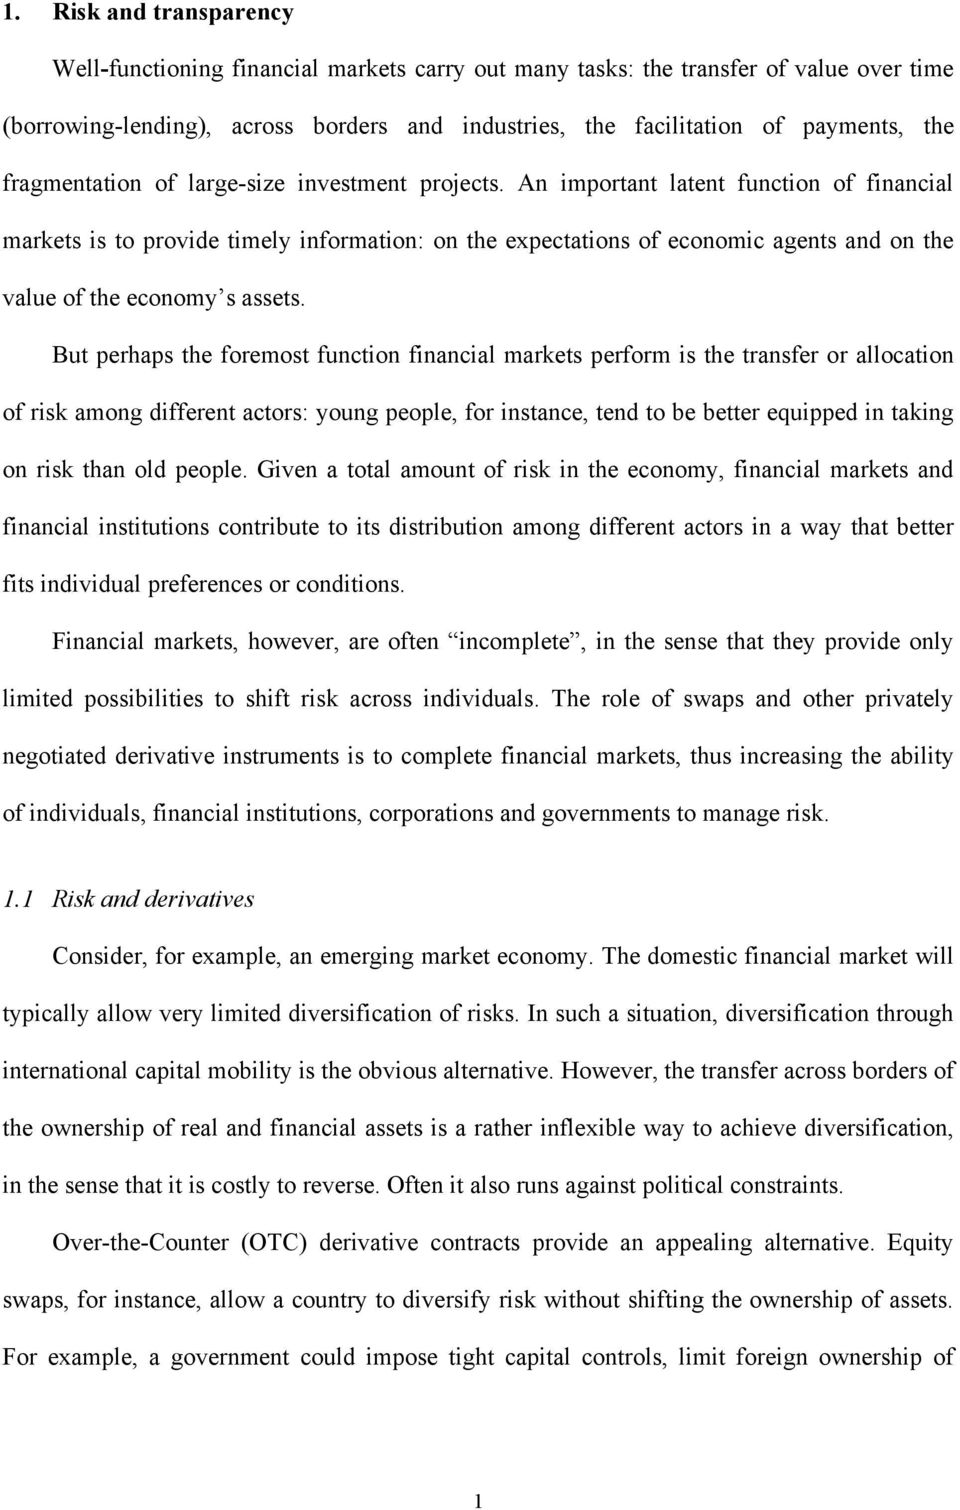 An important latent function of financial markets is to provide timely information: on the expectations of economic agents and on the value of the economy s assets.